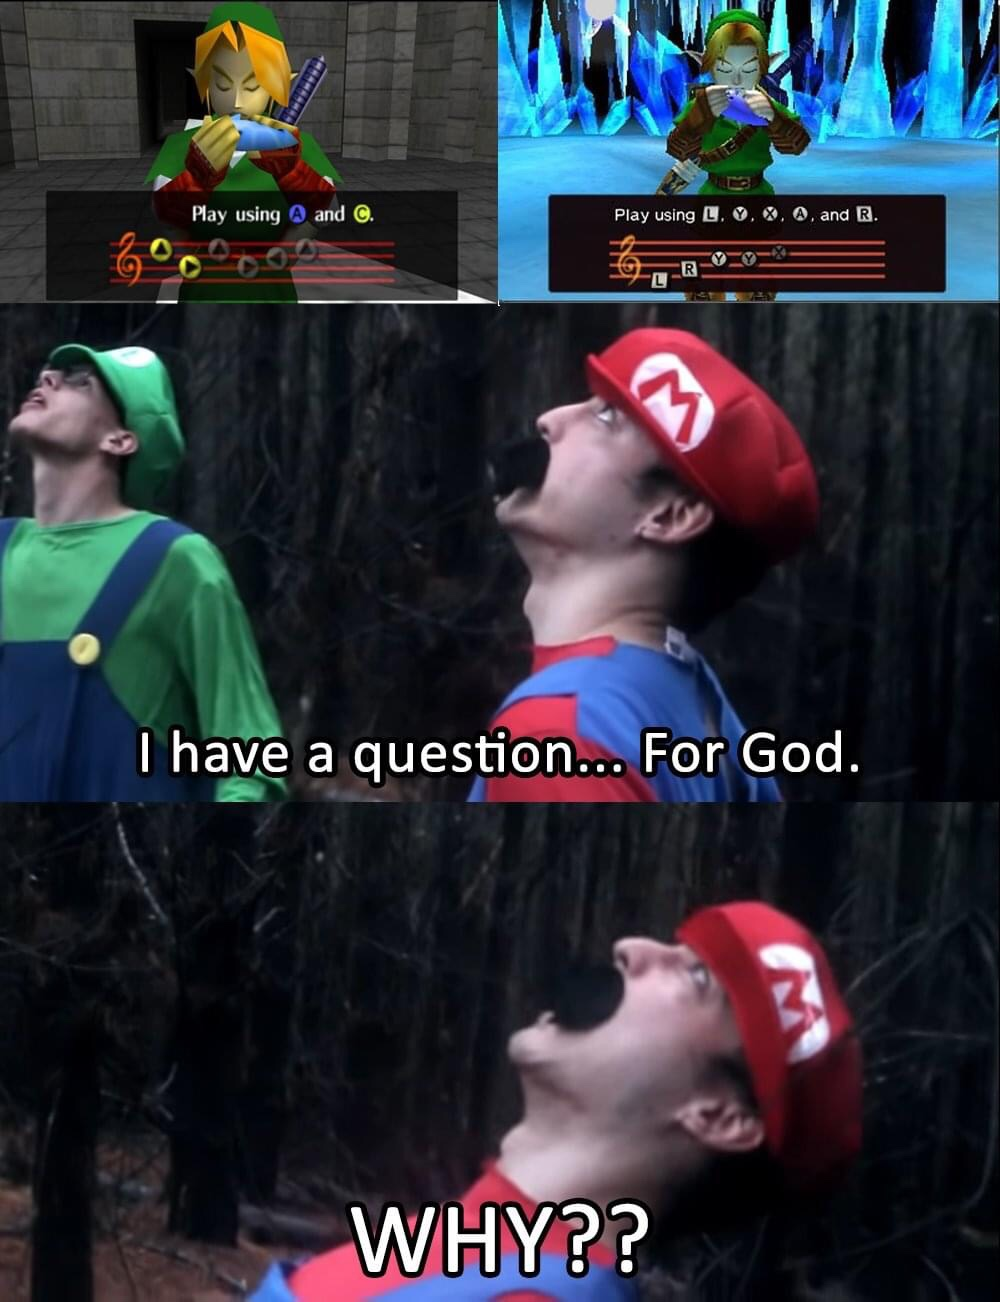 Memes The legend of Zelda ocarina of time playing the ocarina